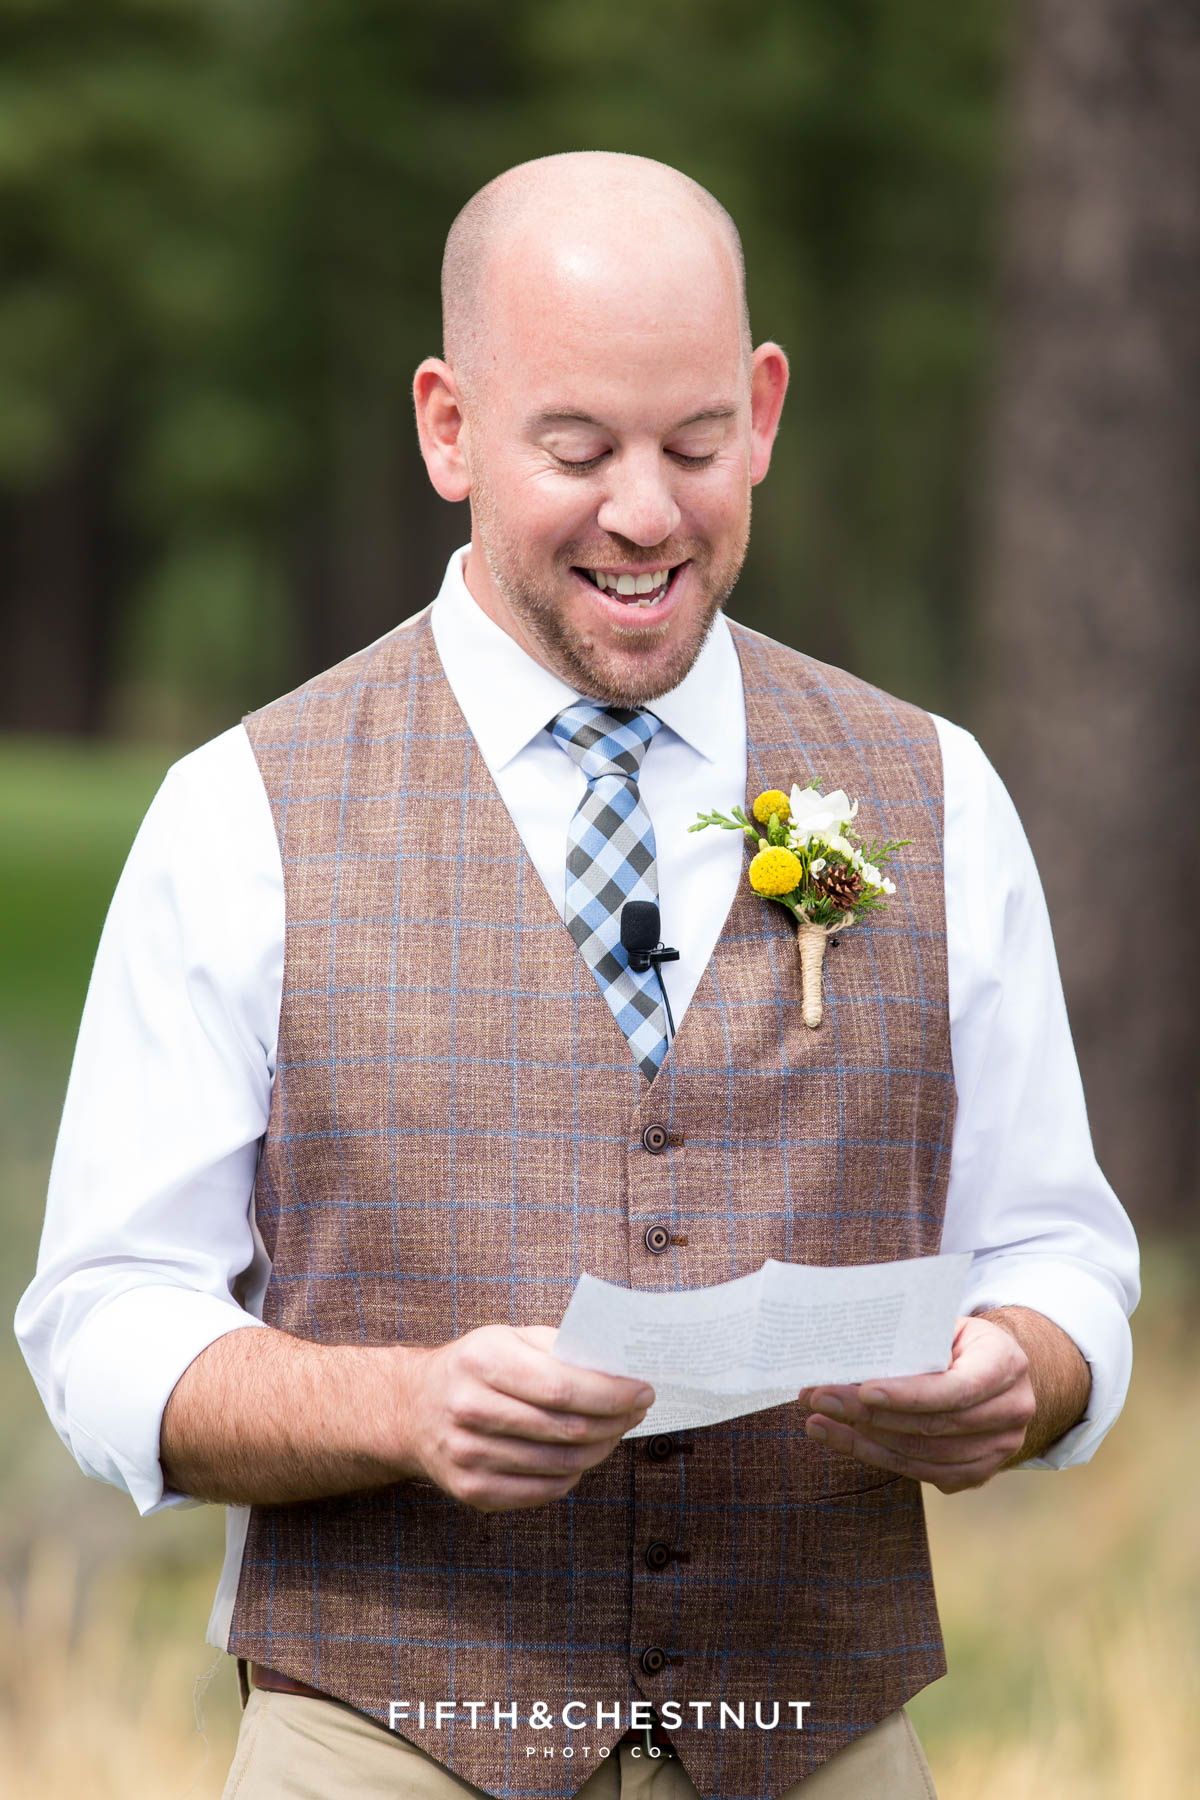 Groom reads his vows to his groom at their same-sex wedding in Truckee